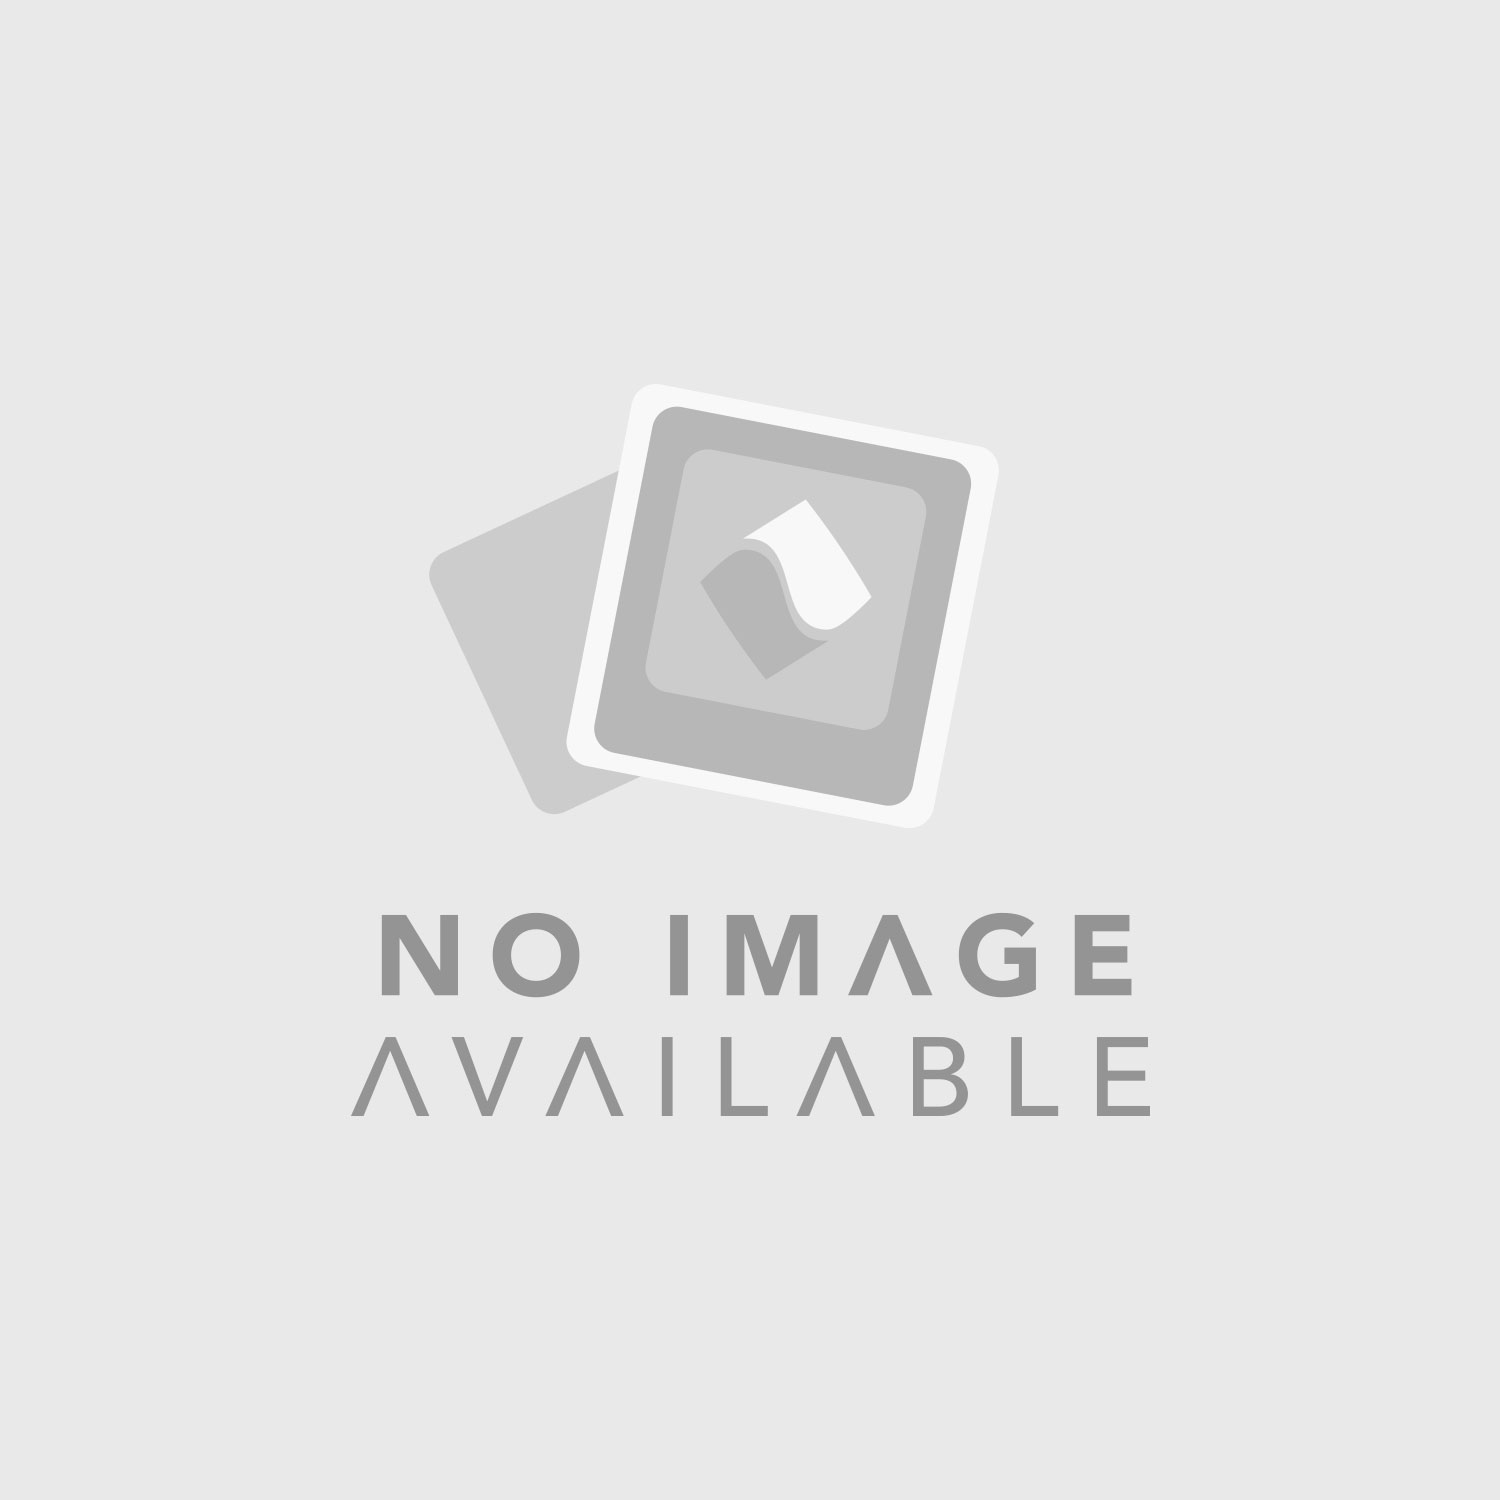 SKB 5FC-0907-6 Replacement Cubed Foam for 3i-0907-6-Series Cases